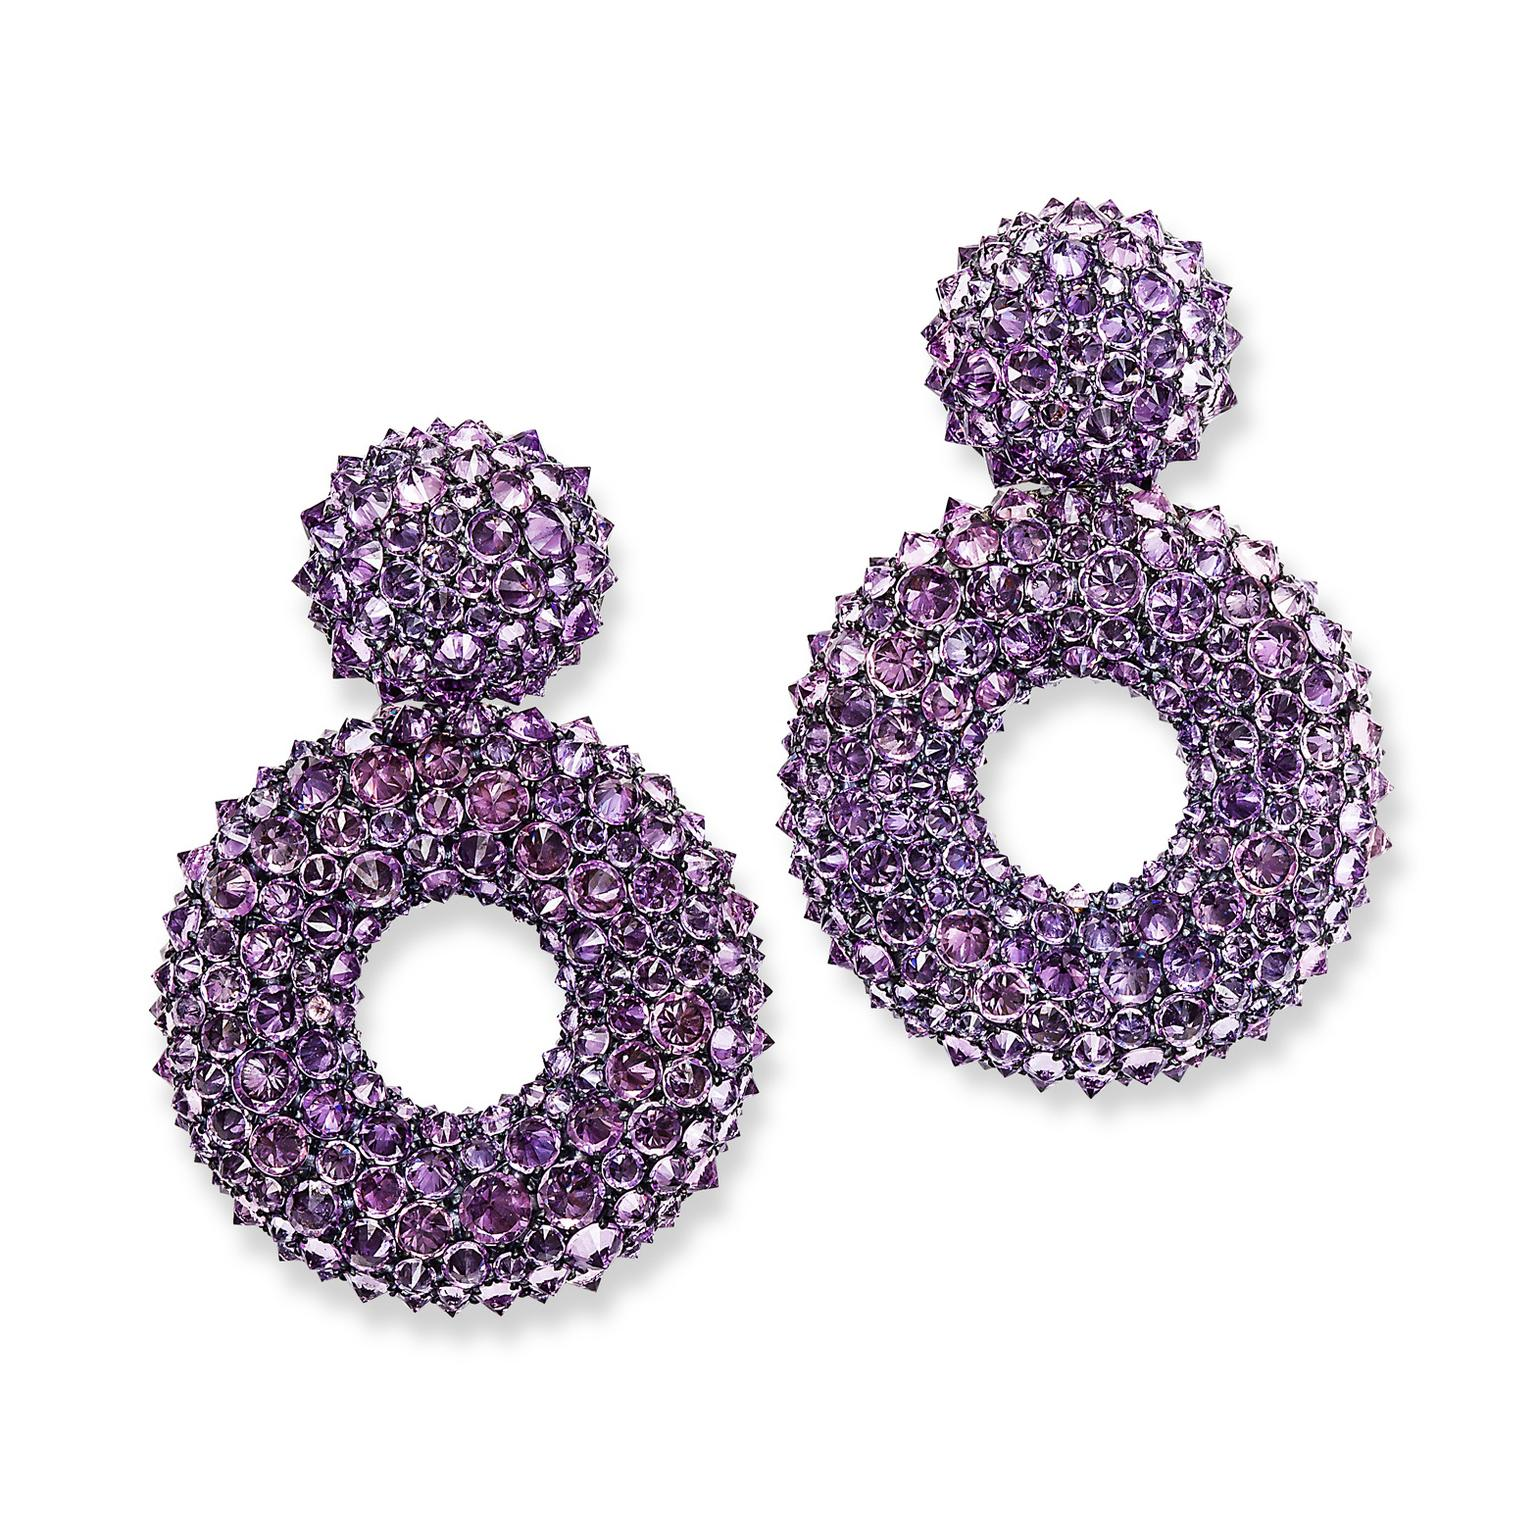 Hemmerle purple sapphire earrings